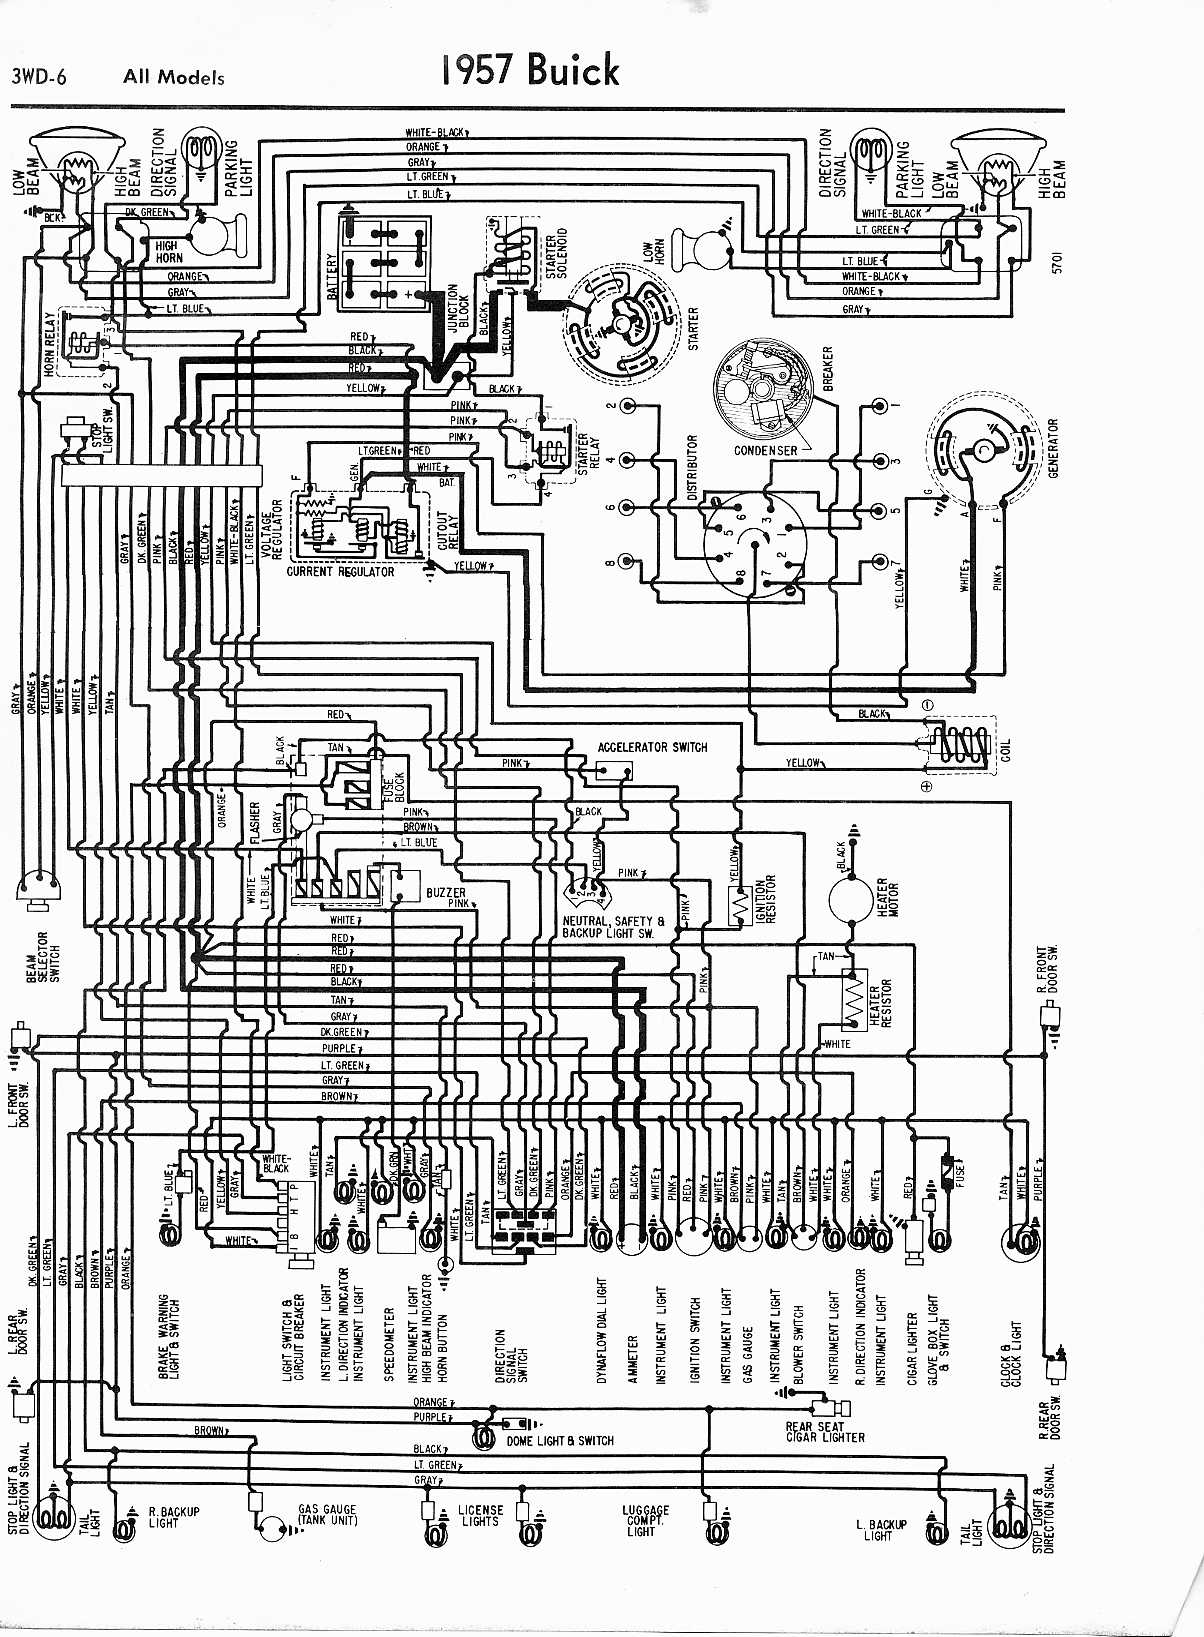 1957 Buick Wiring Harness Real Diagram 57 Vw Installation Schematics Diagrams U2022 Rh Parntesis Co 1960 Oldsmobile